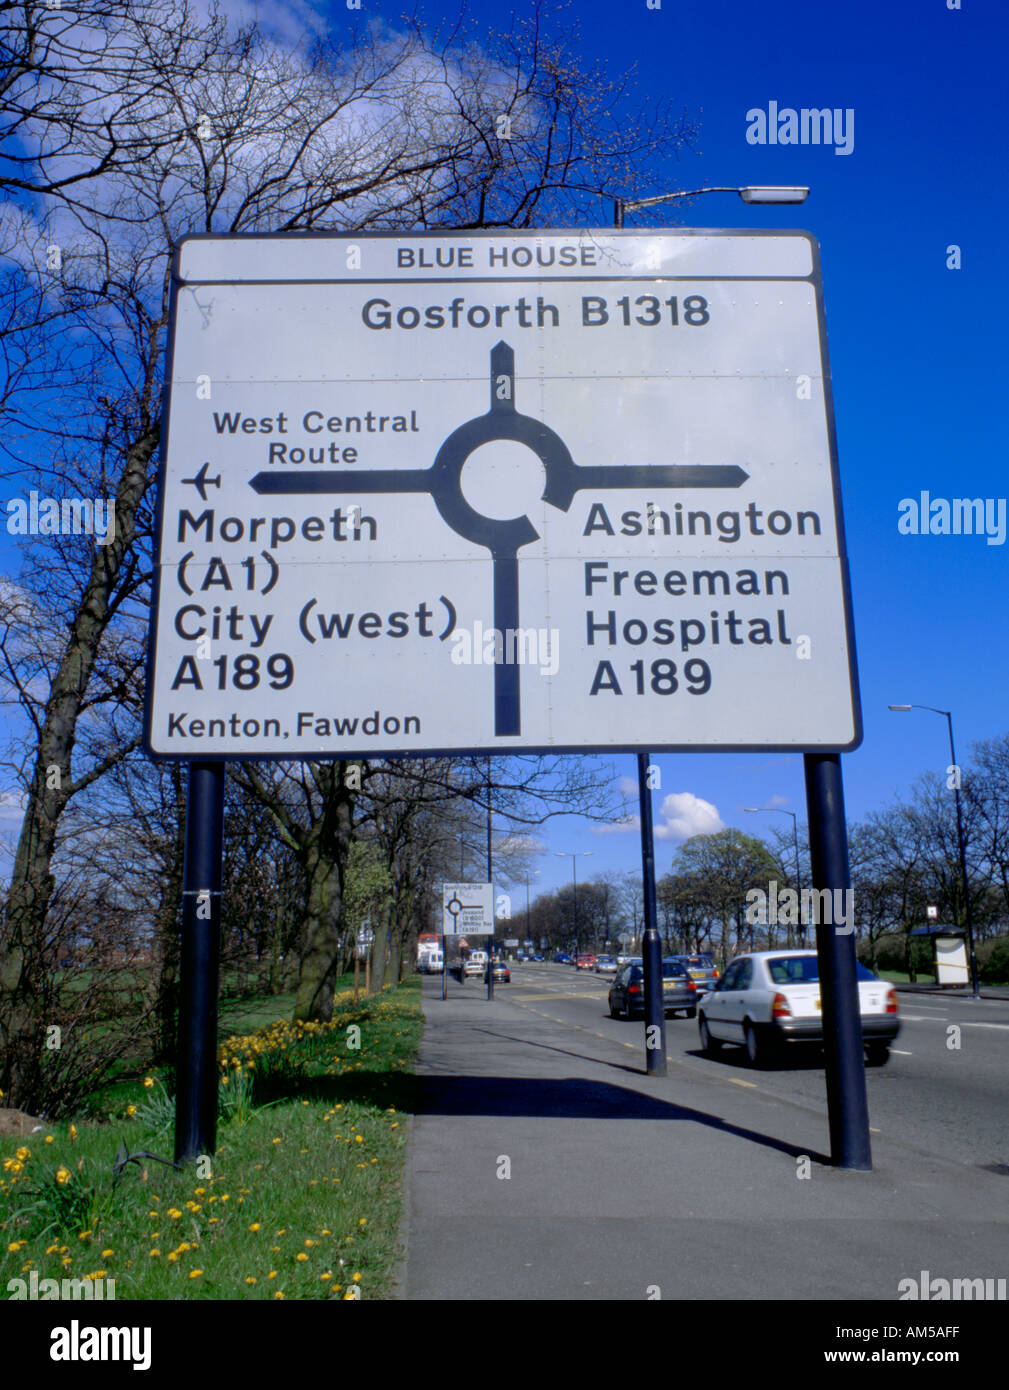 Road sign at the approach to a roundabout, Newcastle upon Tyne, Tyne and Wear, England, UK. - Stock Image